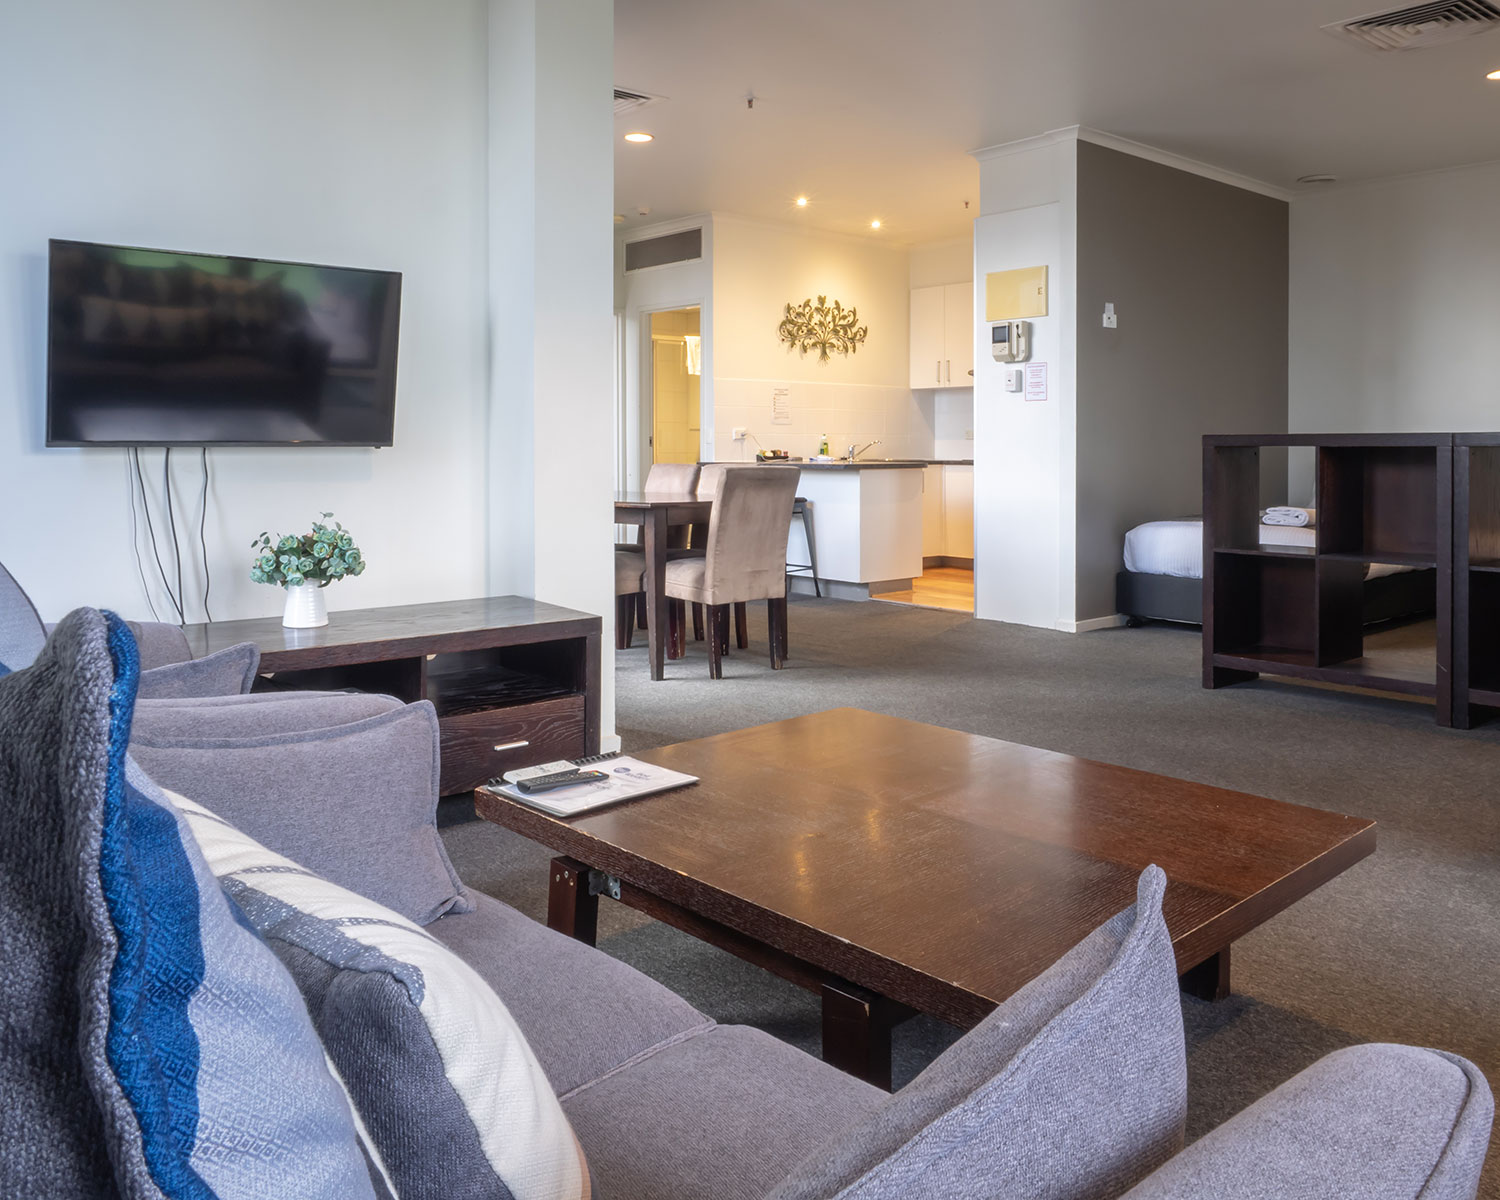 riverside apartments melbourne vic accommodation two bedroom penthouse17 1